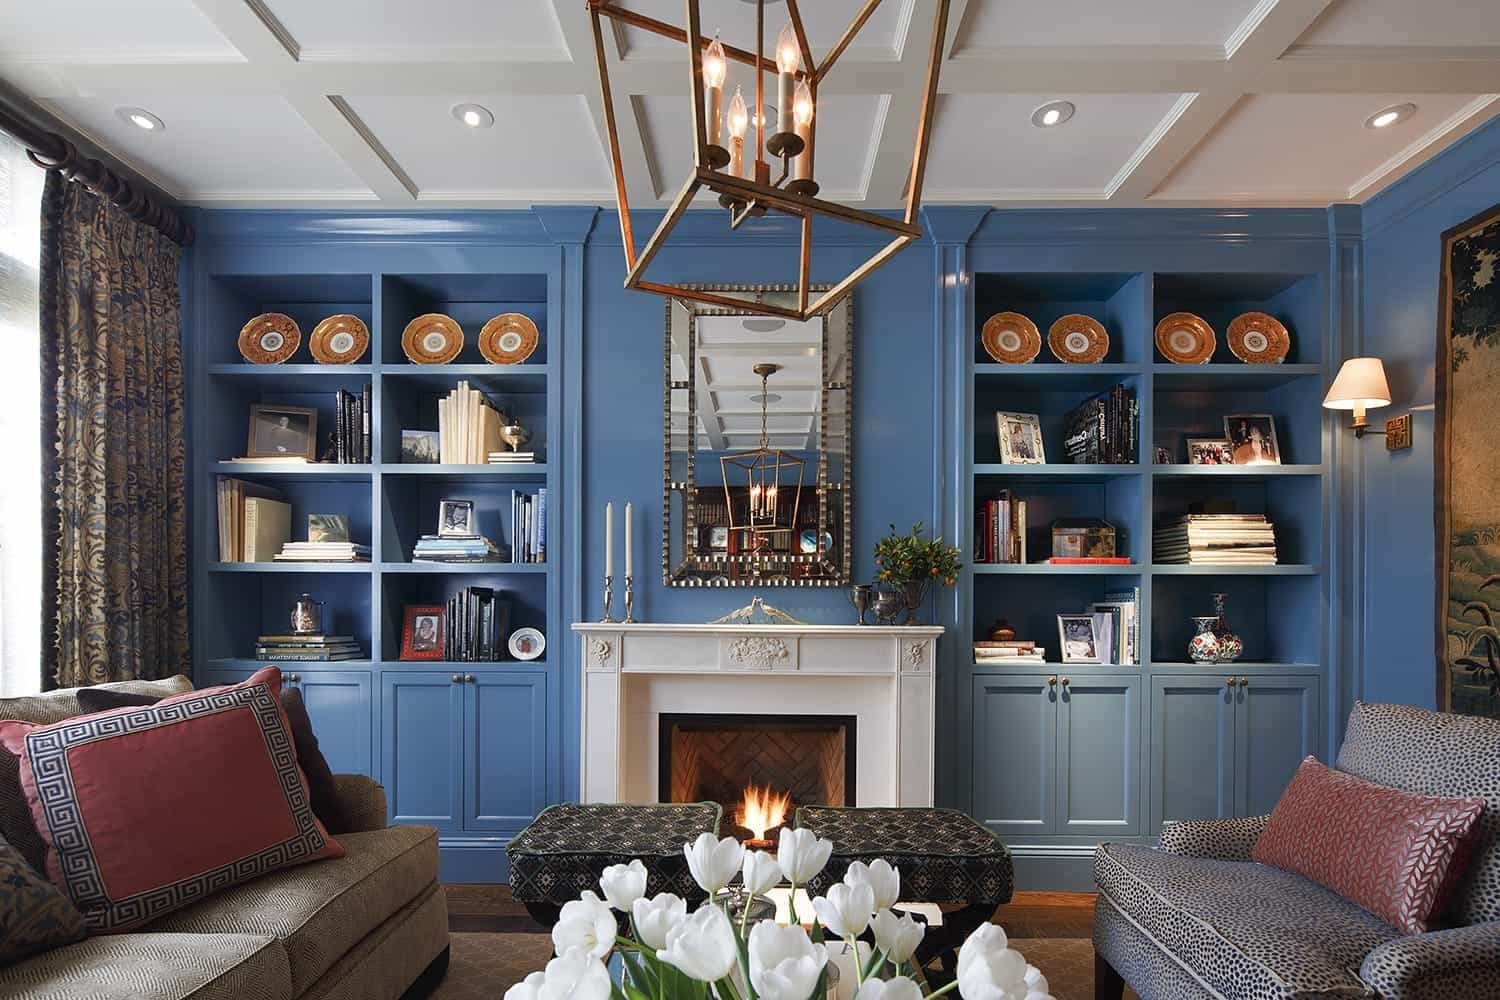 Beautiful Blue Bookshelves In Traditional Living Room (Image 4 of 29)